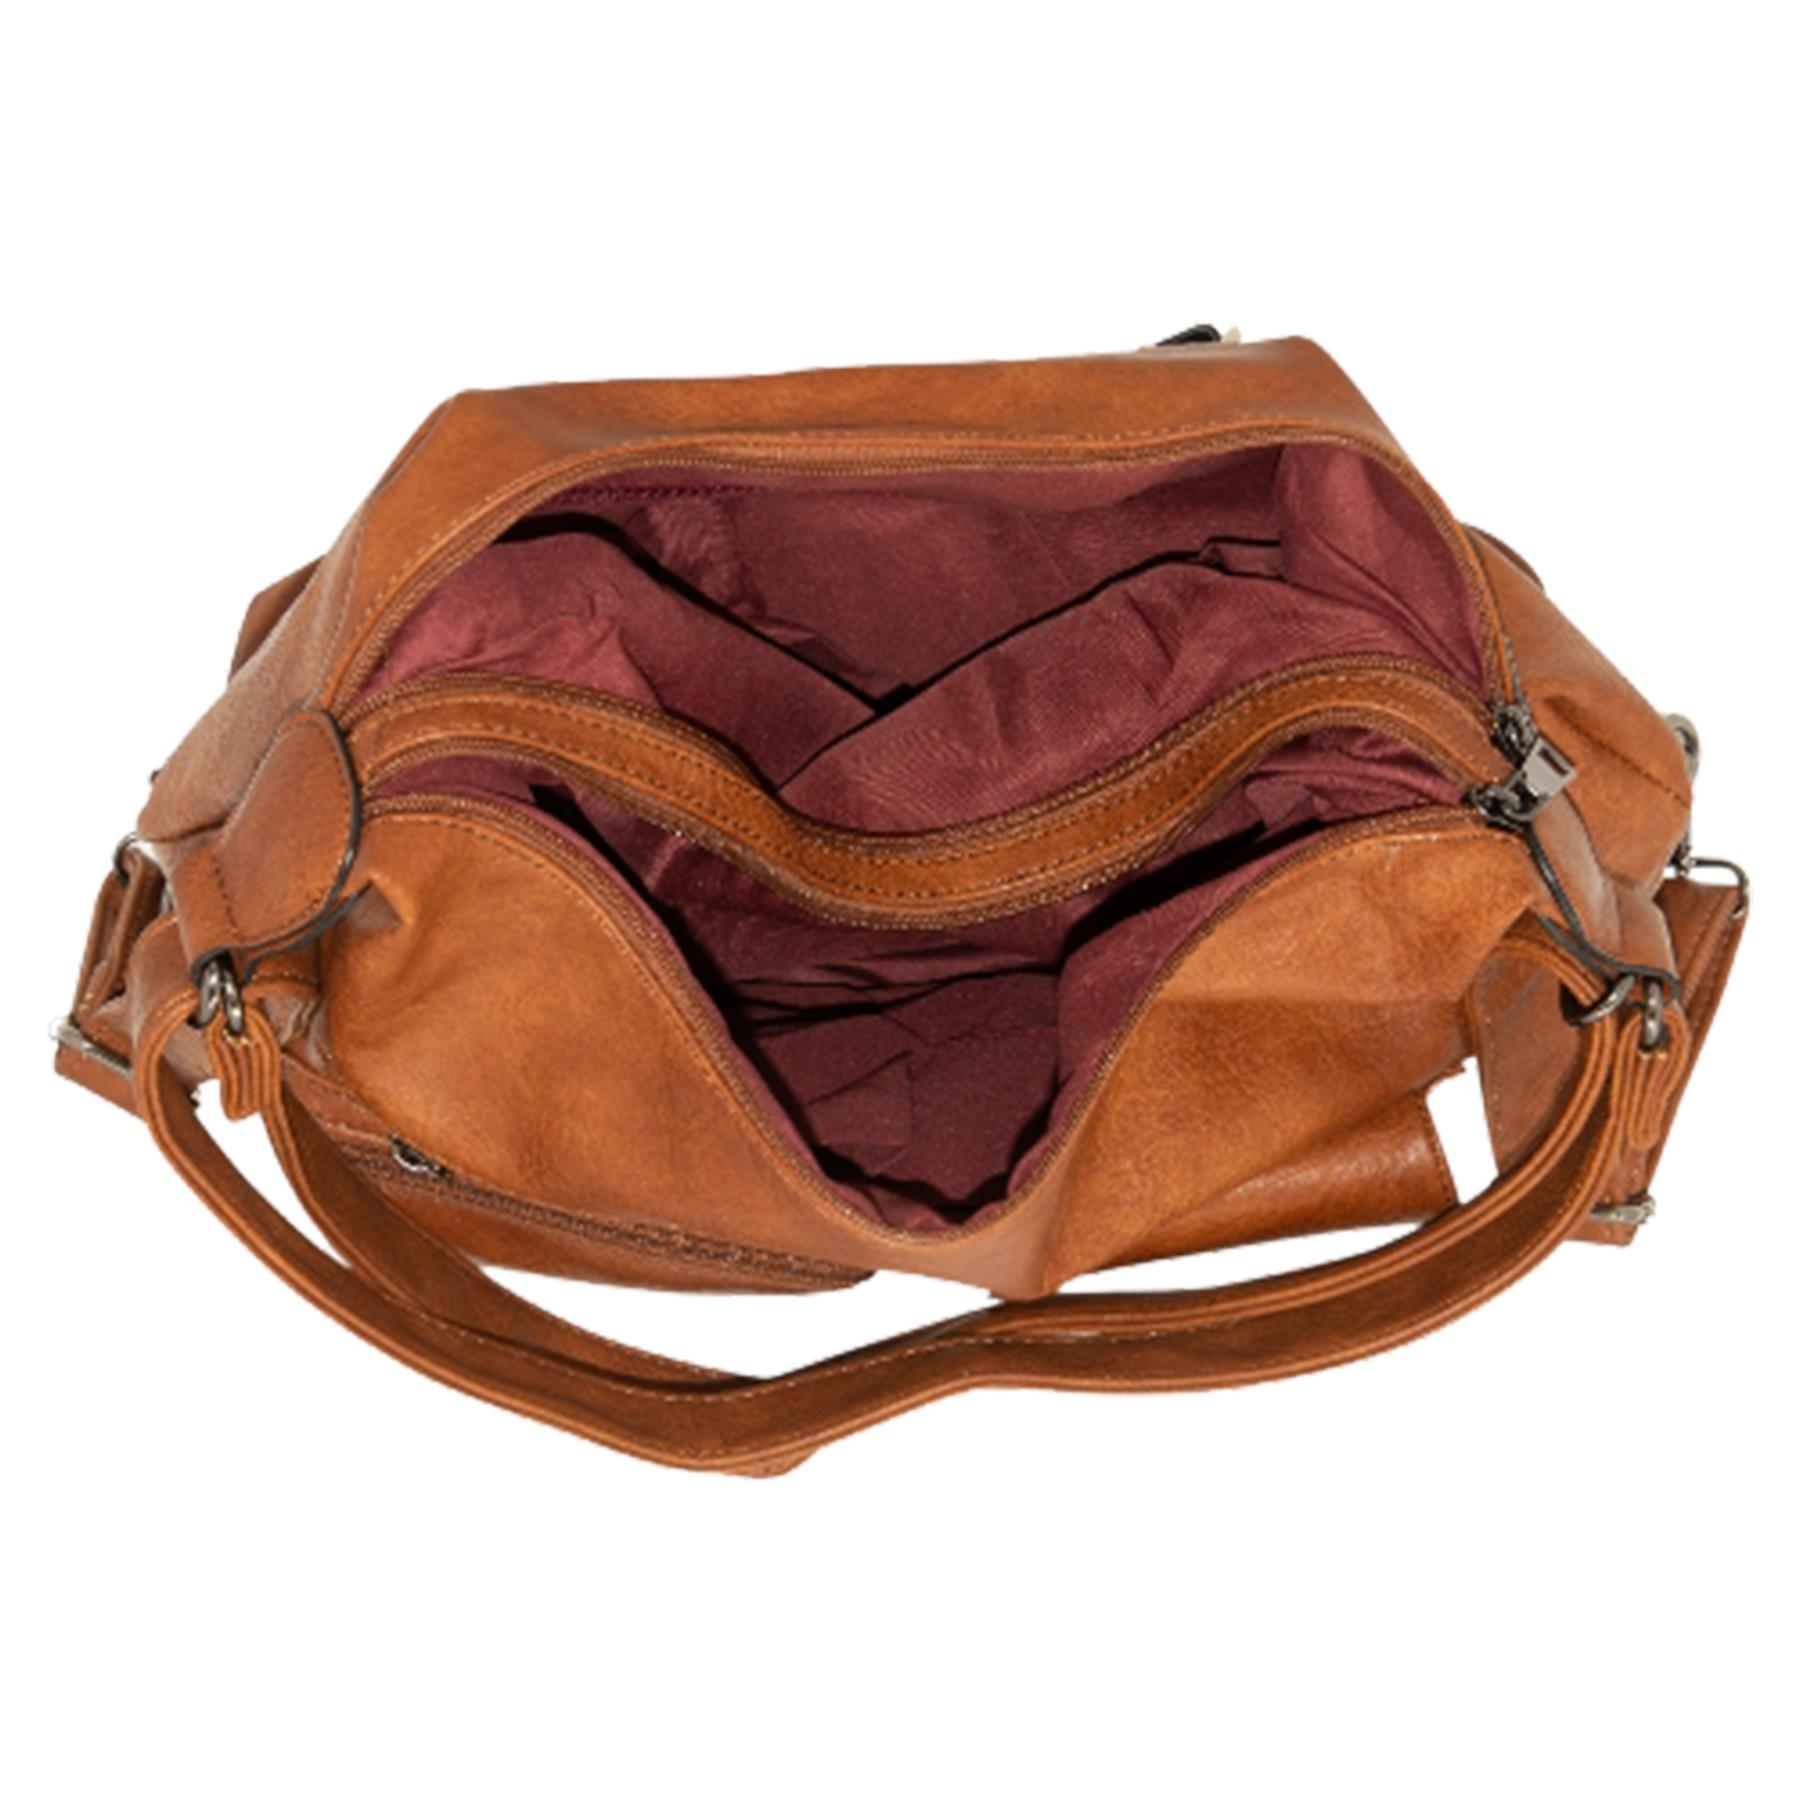 New-Women-s-Men-s-Faux-Leather-Multi-Purpose-Crossbody-Messenger-Bag thumbnail 9